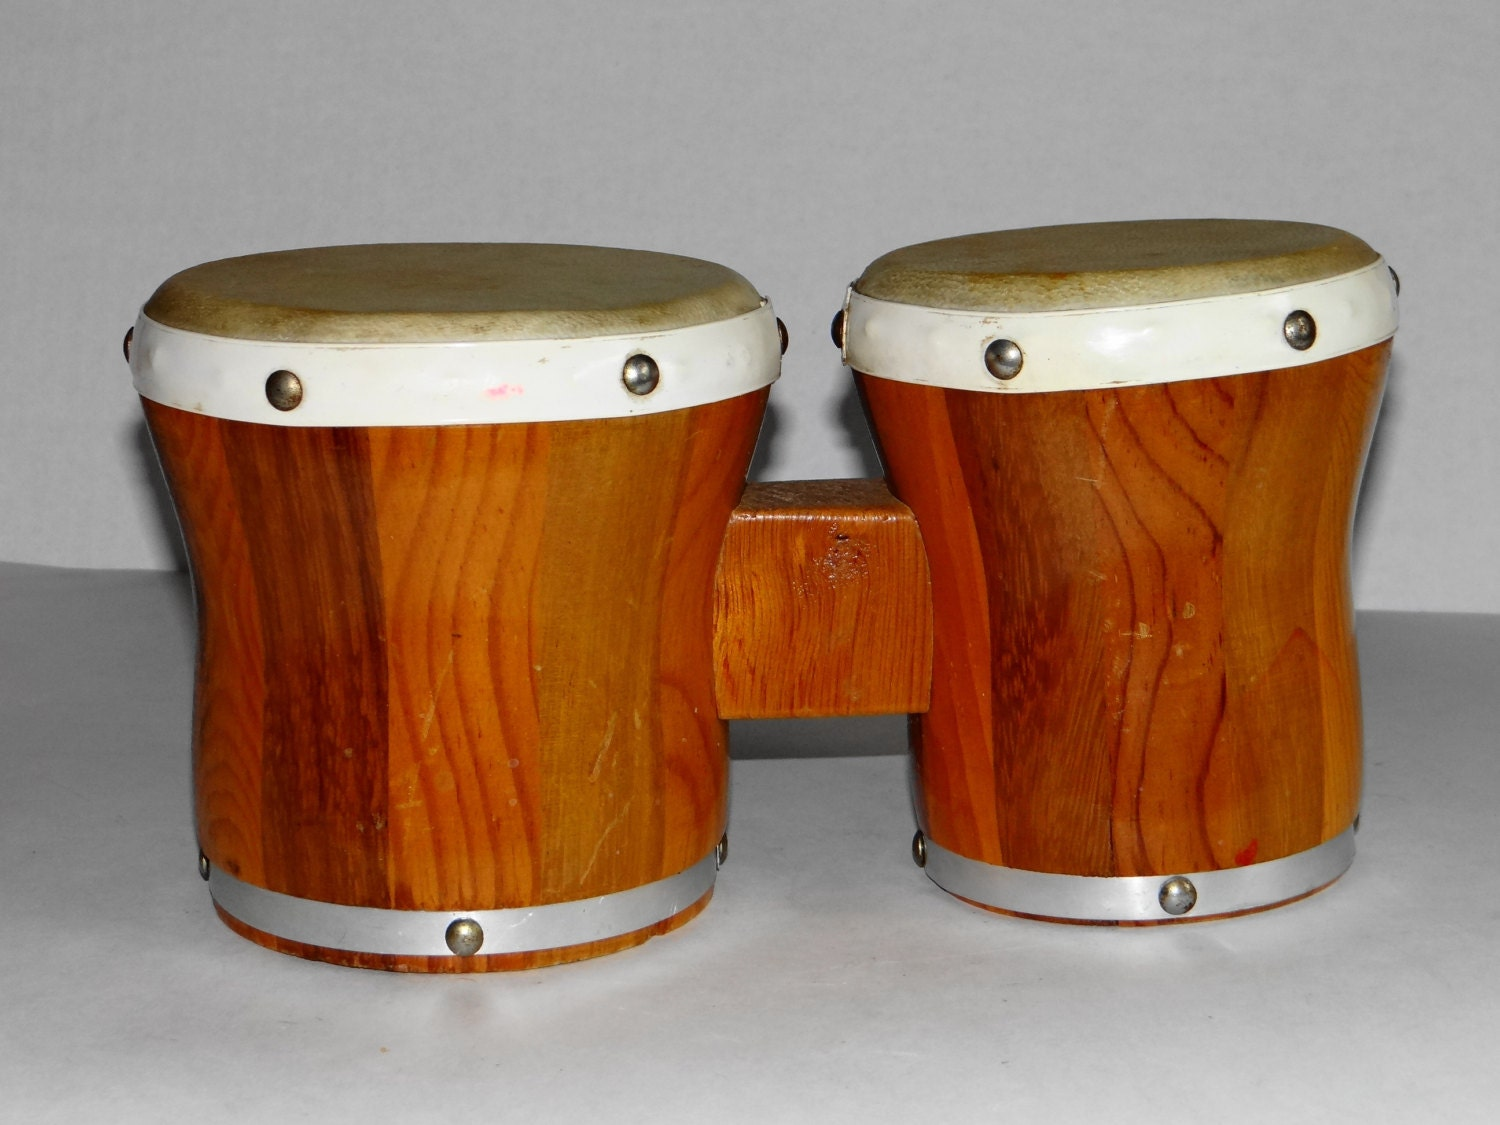 Vintage s wooden double bongo drums by